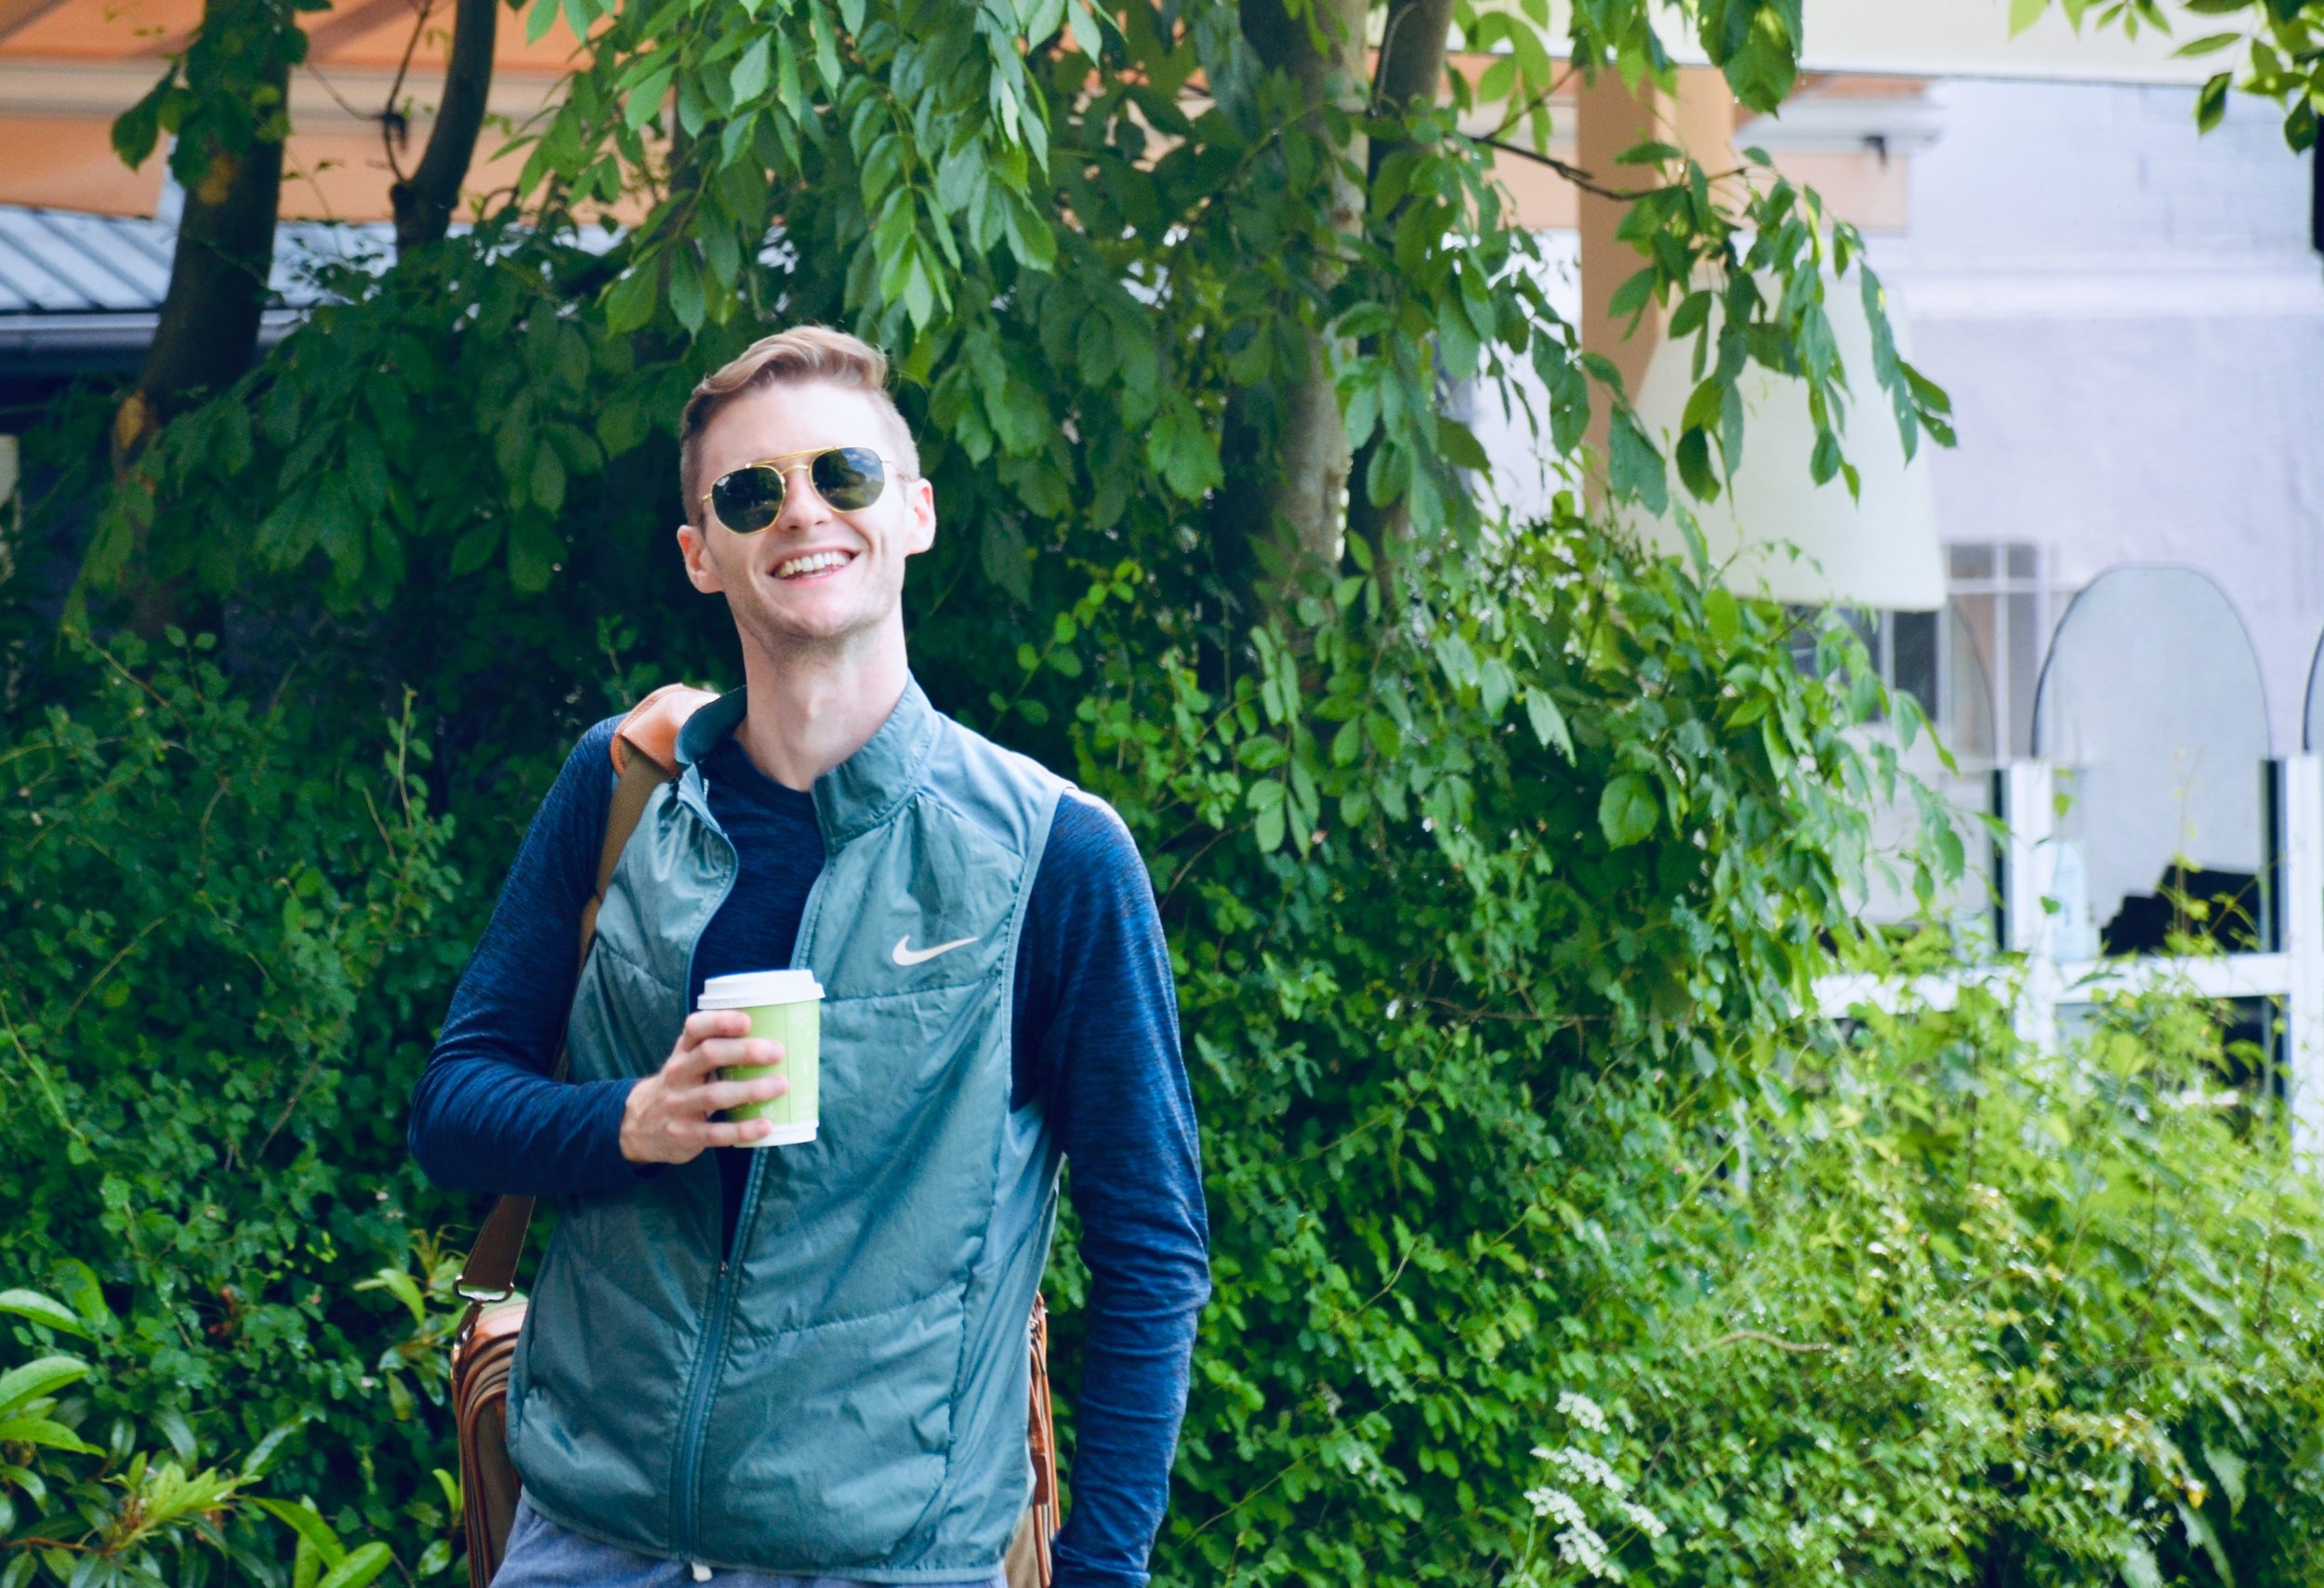 Evan Currie enjoys a beautiful day in Lübeck.